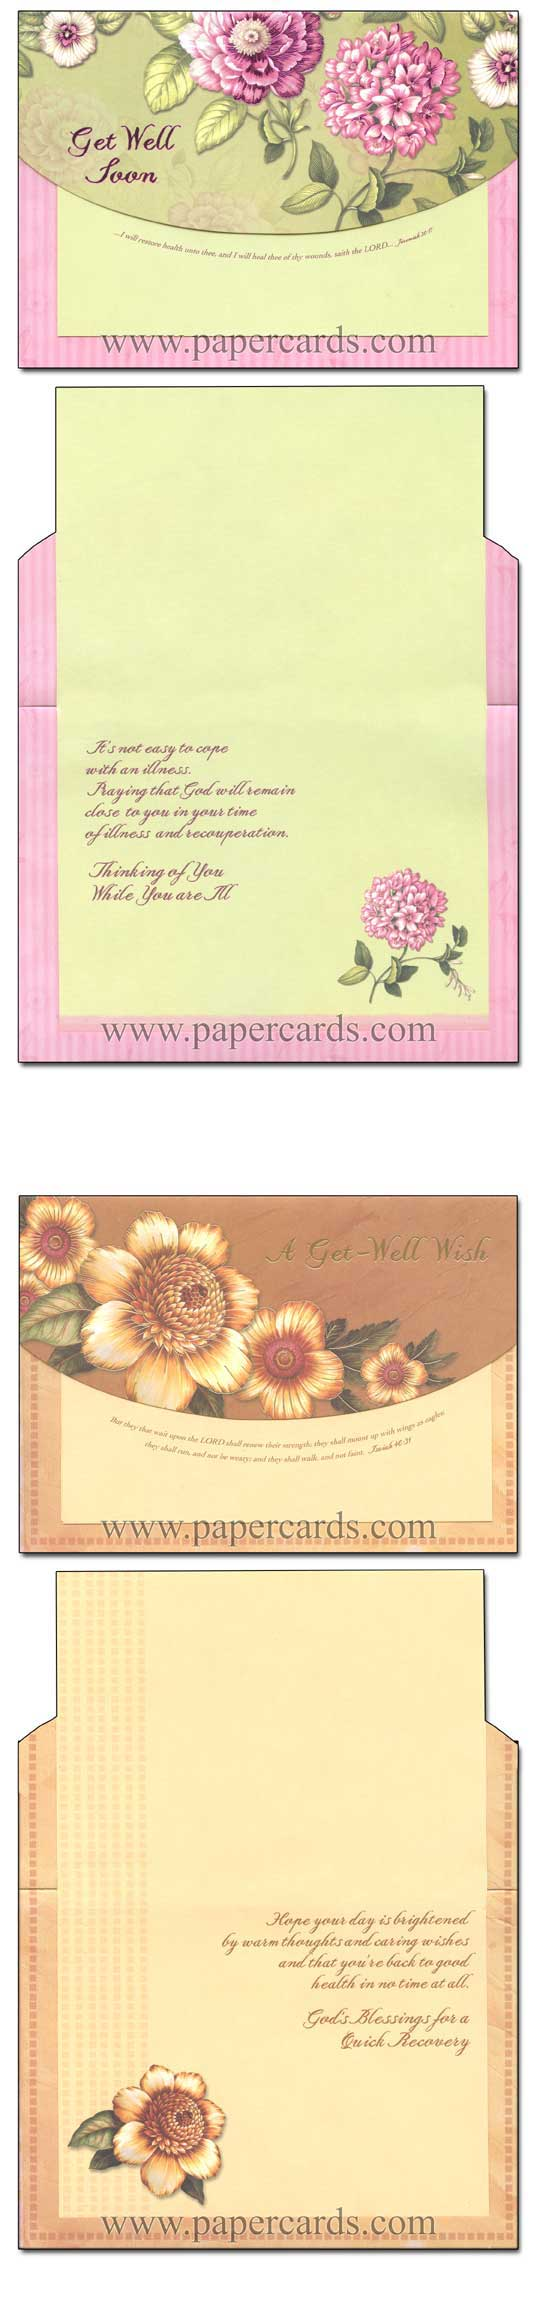 Floral Rapture Box Of 12 Assorted Christian Get Well Cards By